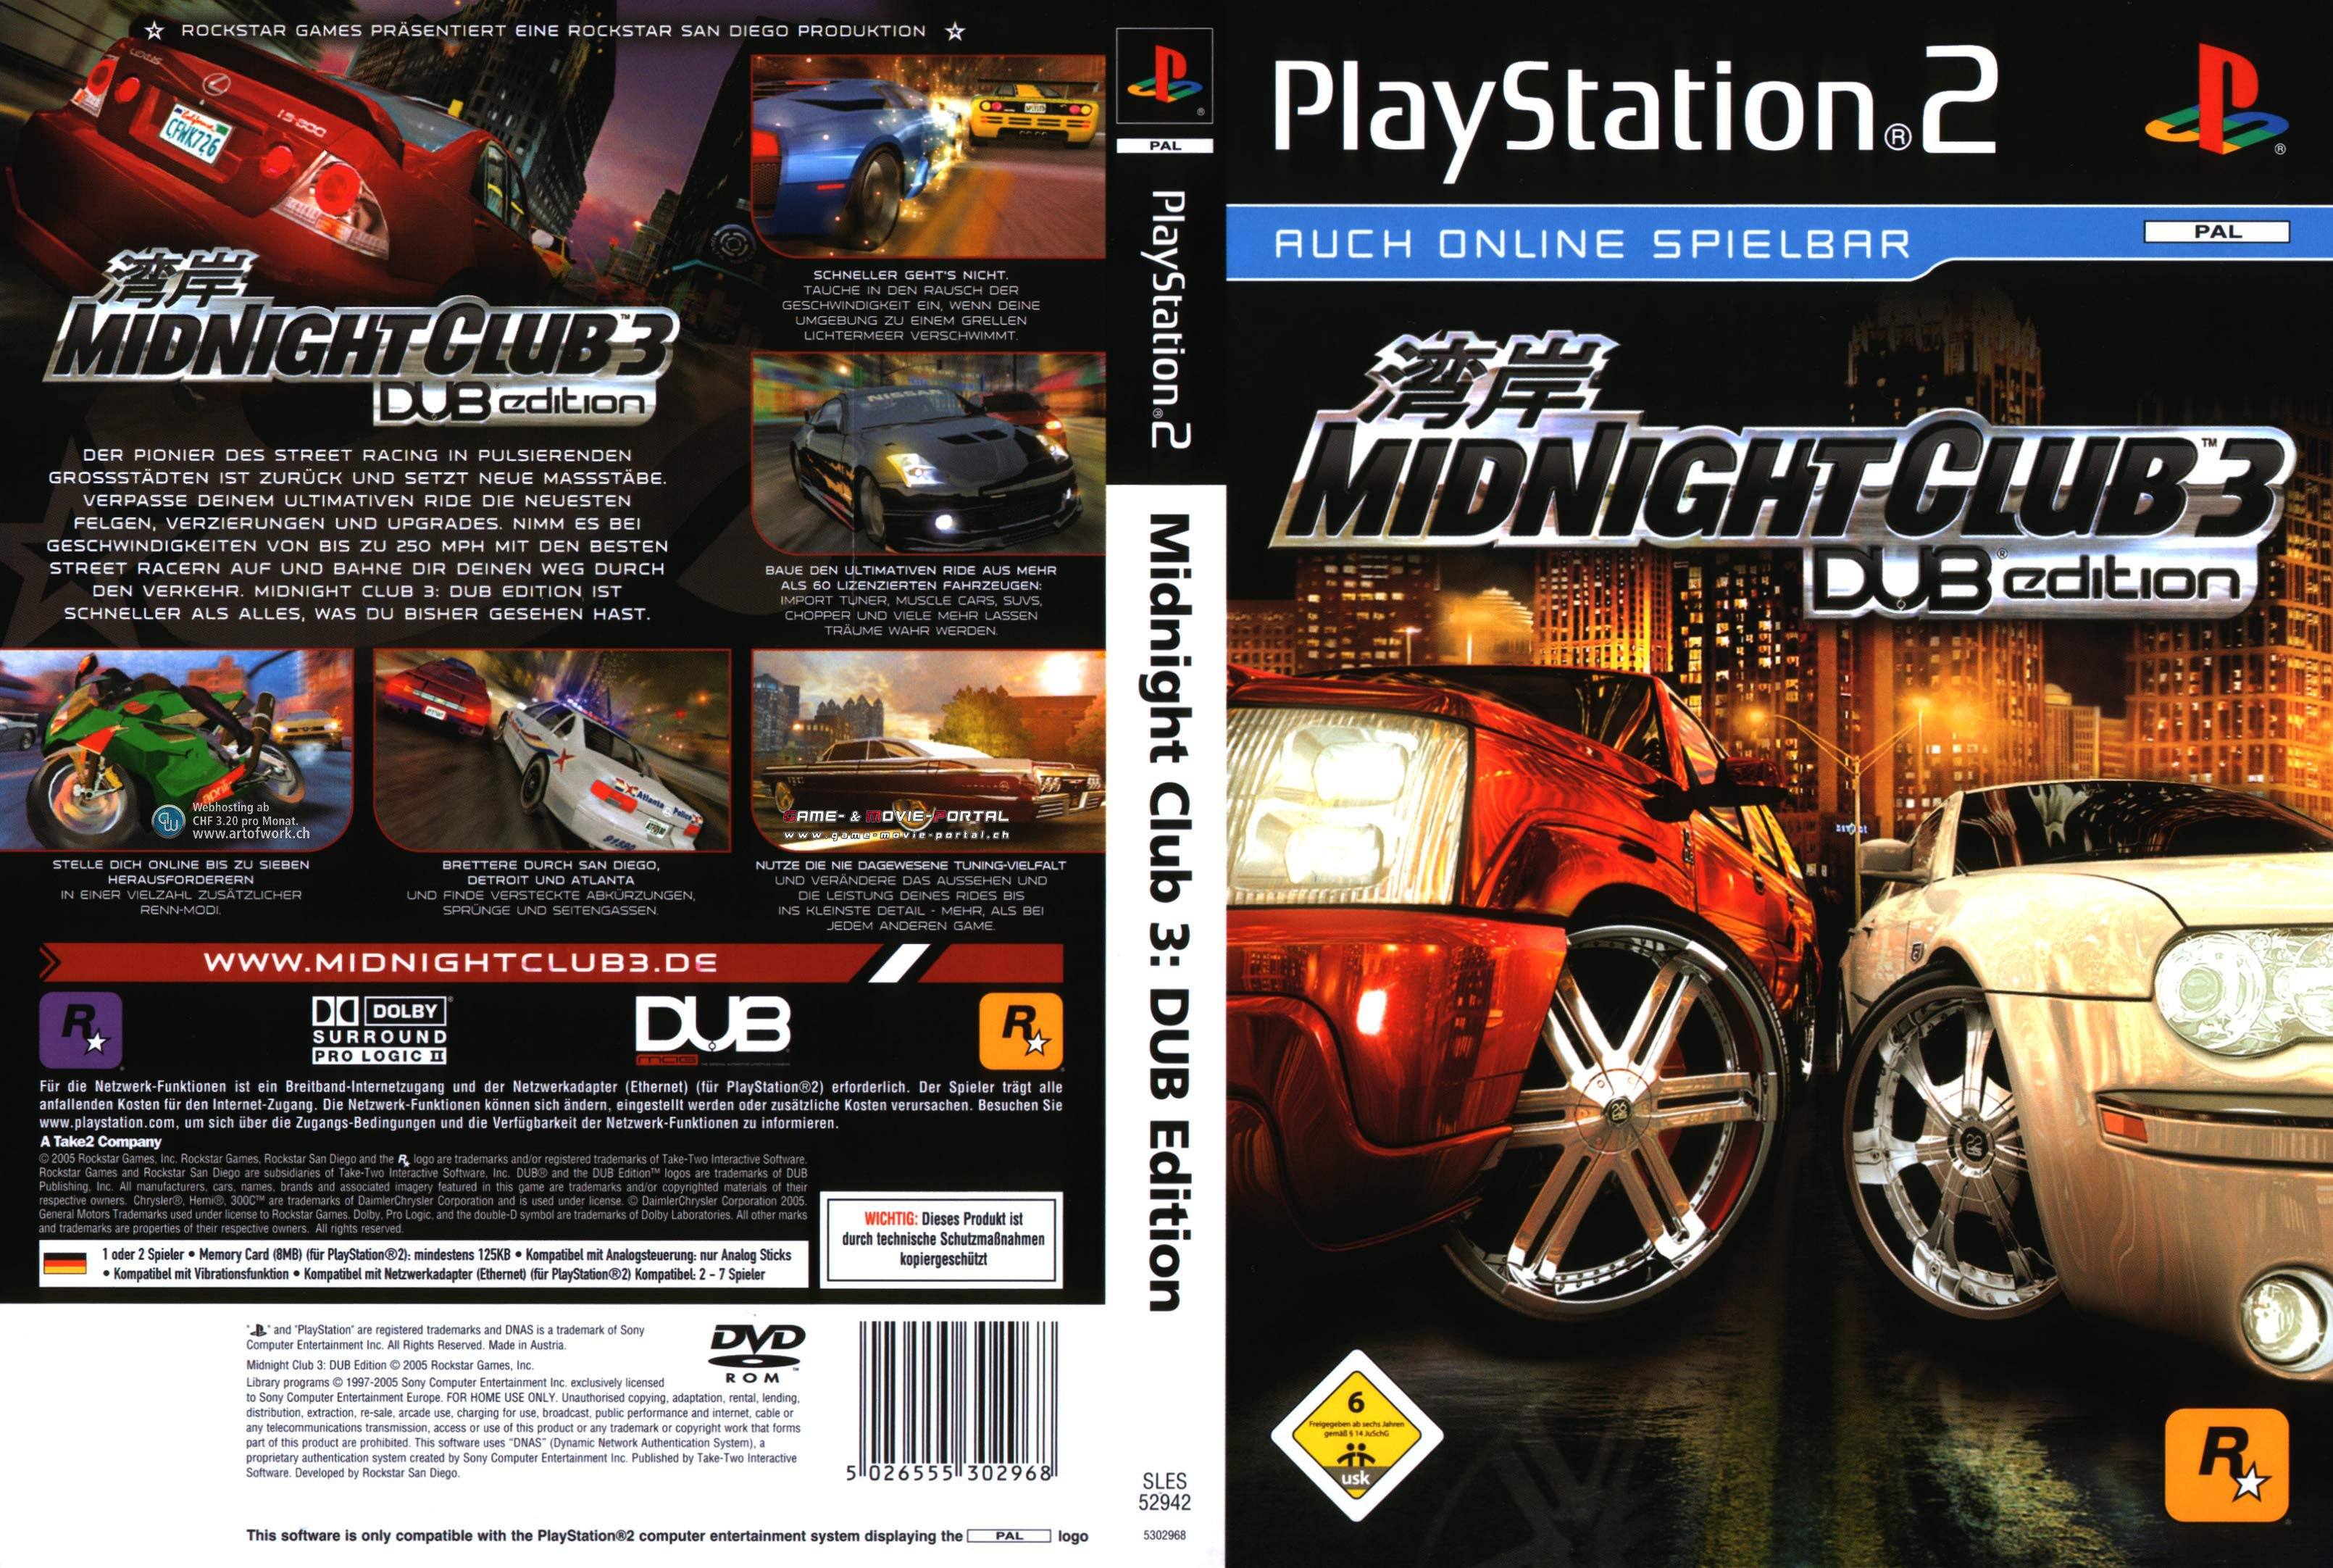 midnight club 3 playstation 2 cover german german dvd covers. Black Bedroom Furniture Sets. Home Design Ideas